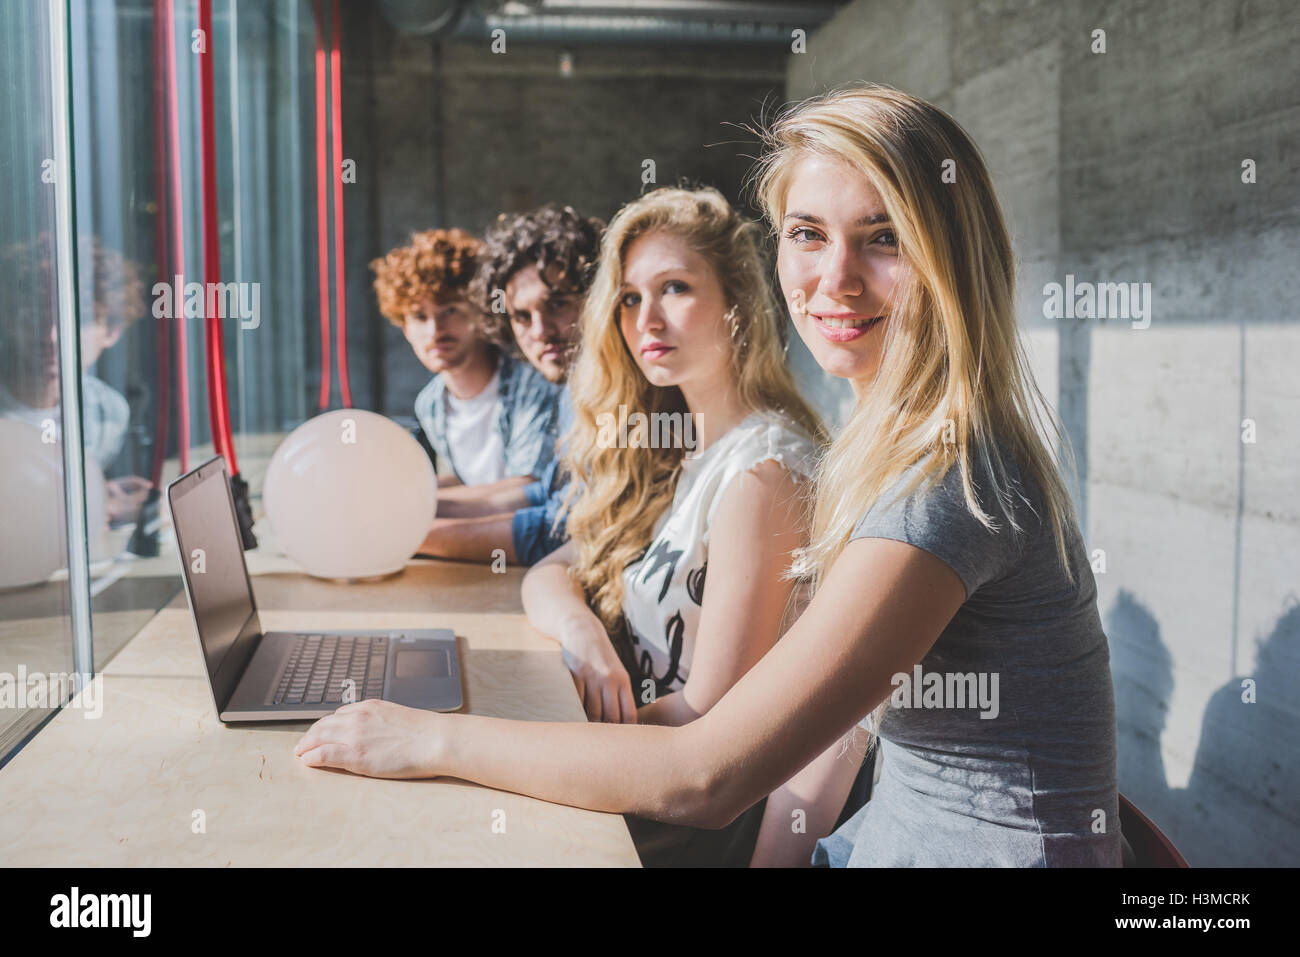 Co-workers working on laptop beside bar counter by window - Stock Image